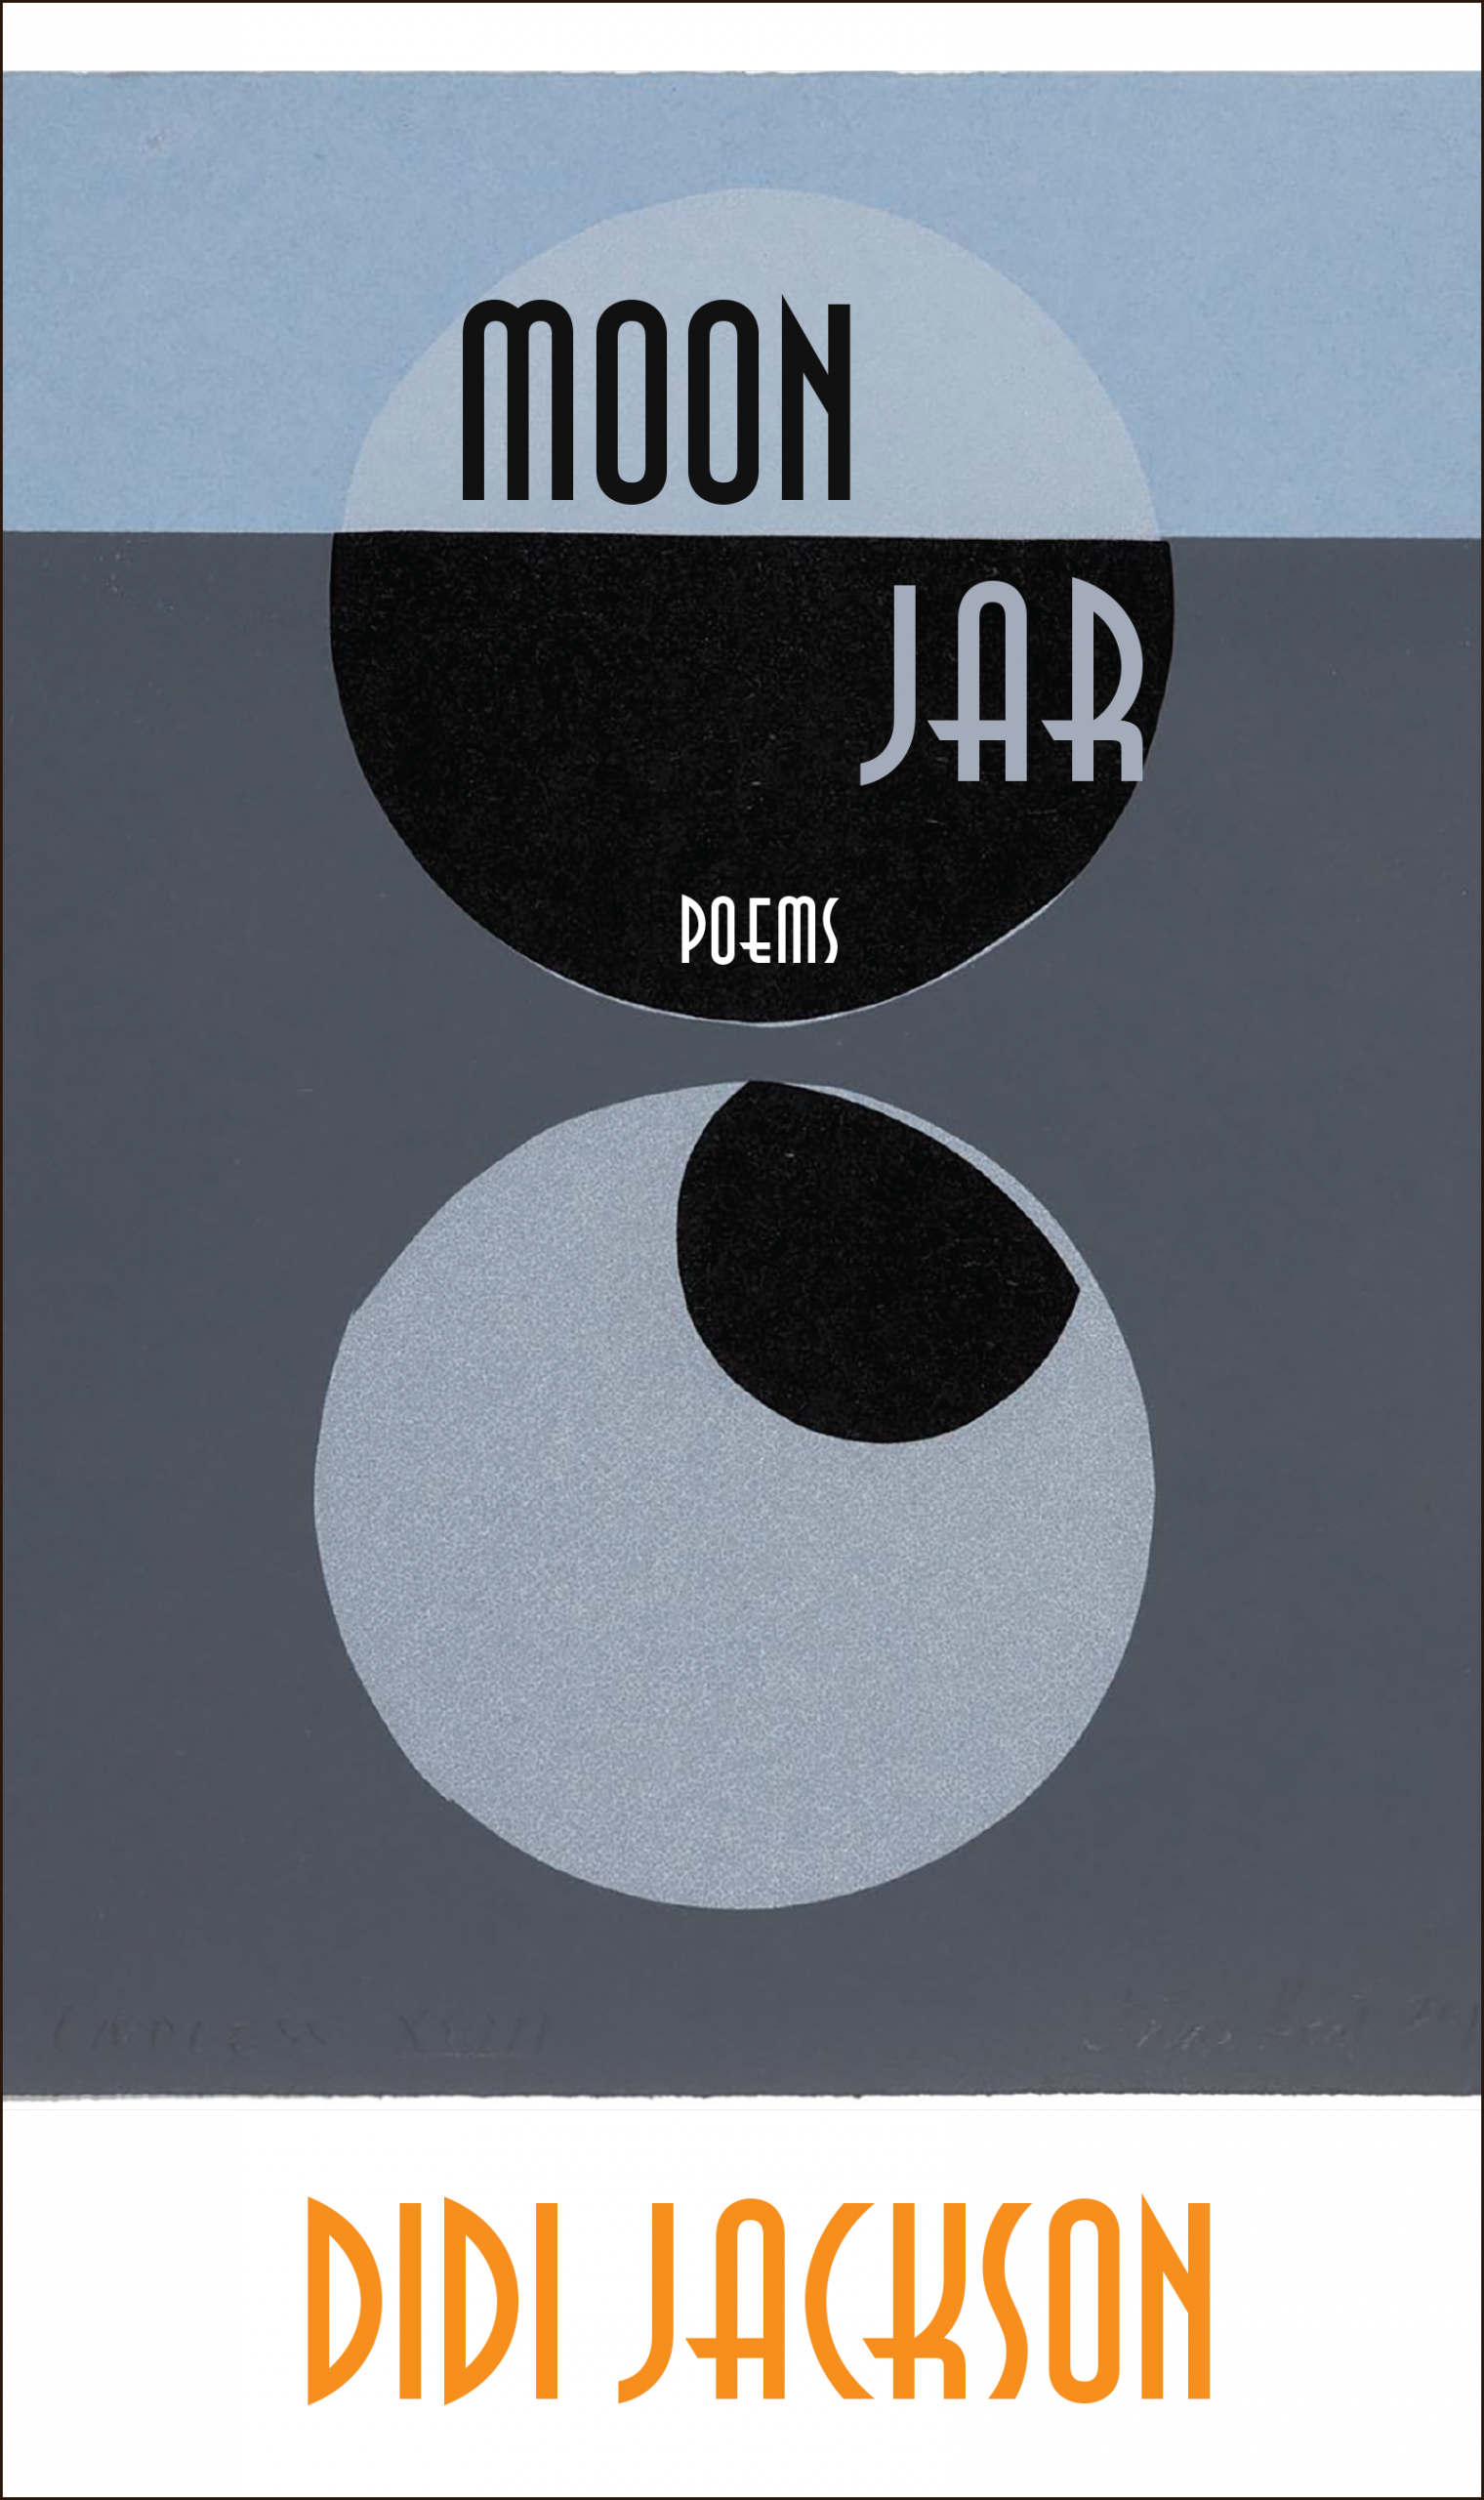 An abstract design of two circles with black script that reads Moon Jar poems by Didi Jackson.